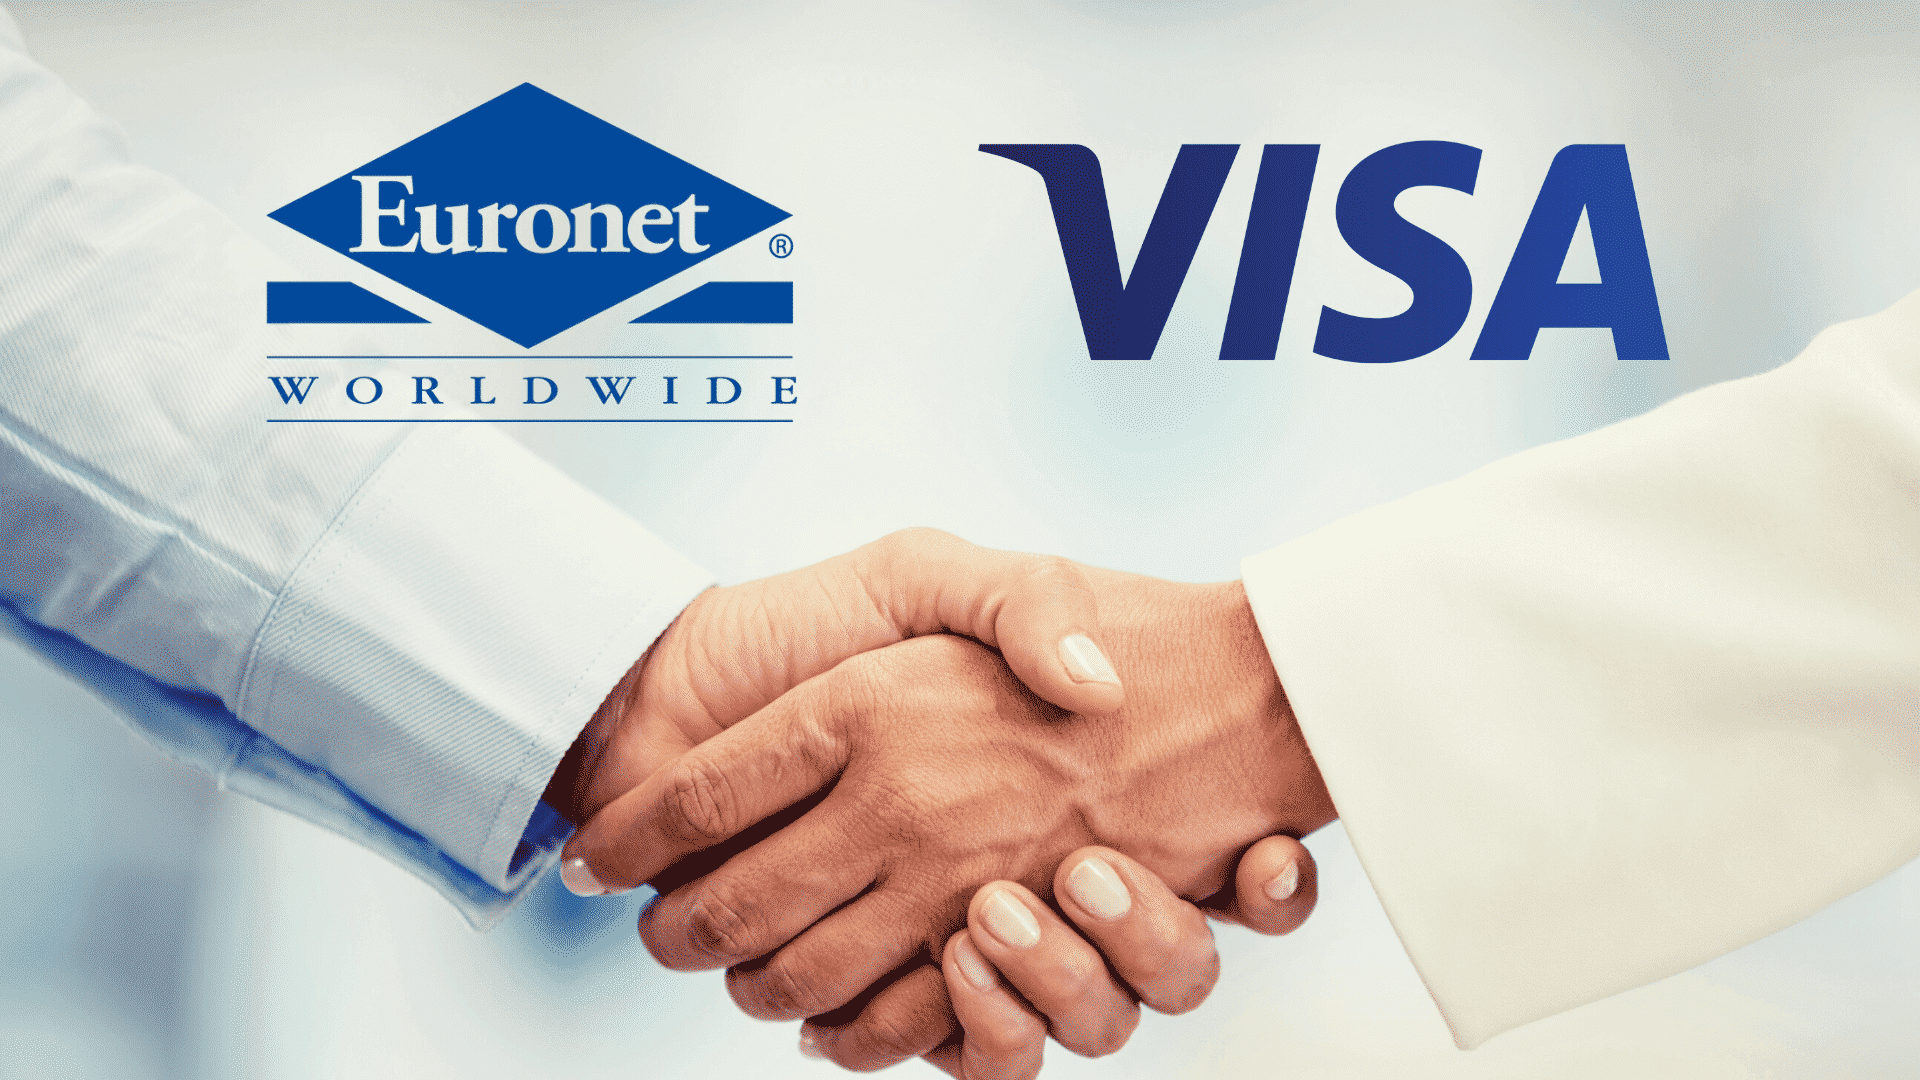 Euronet Worldwide Partners With Visa to Accelerate Growth of Fintechs in APAC